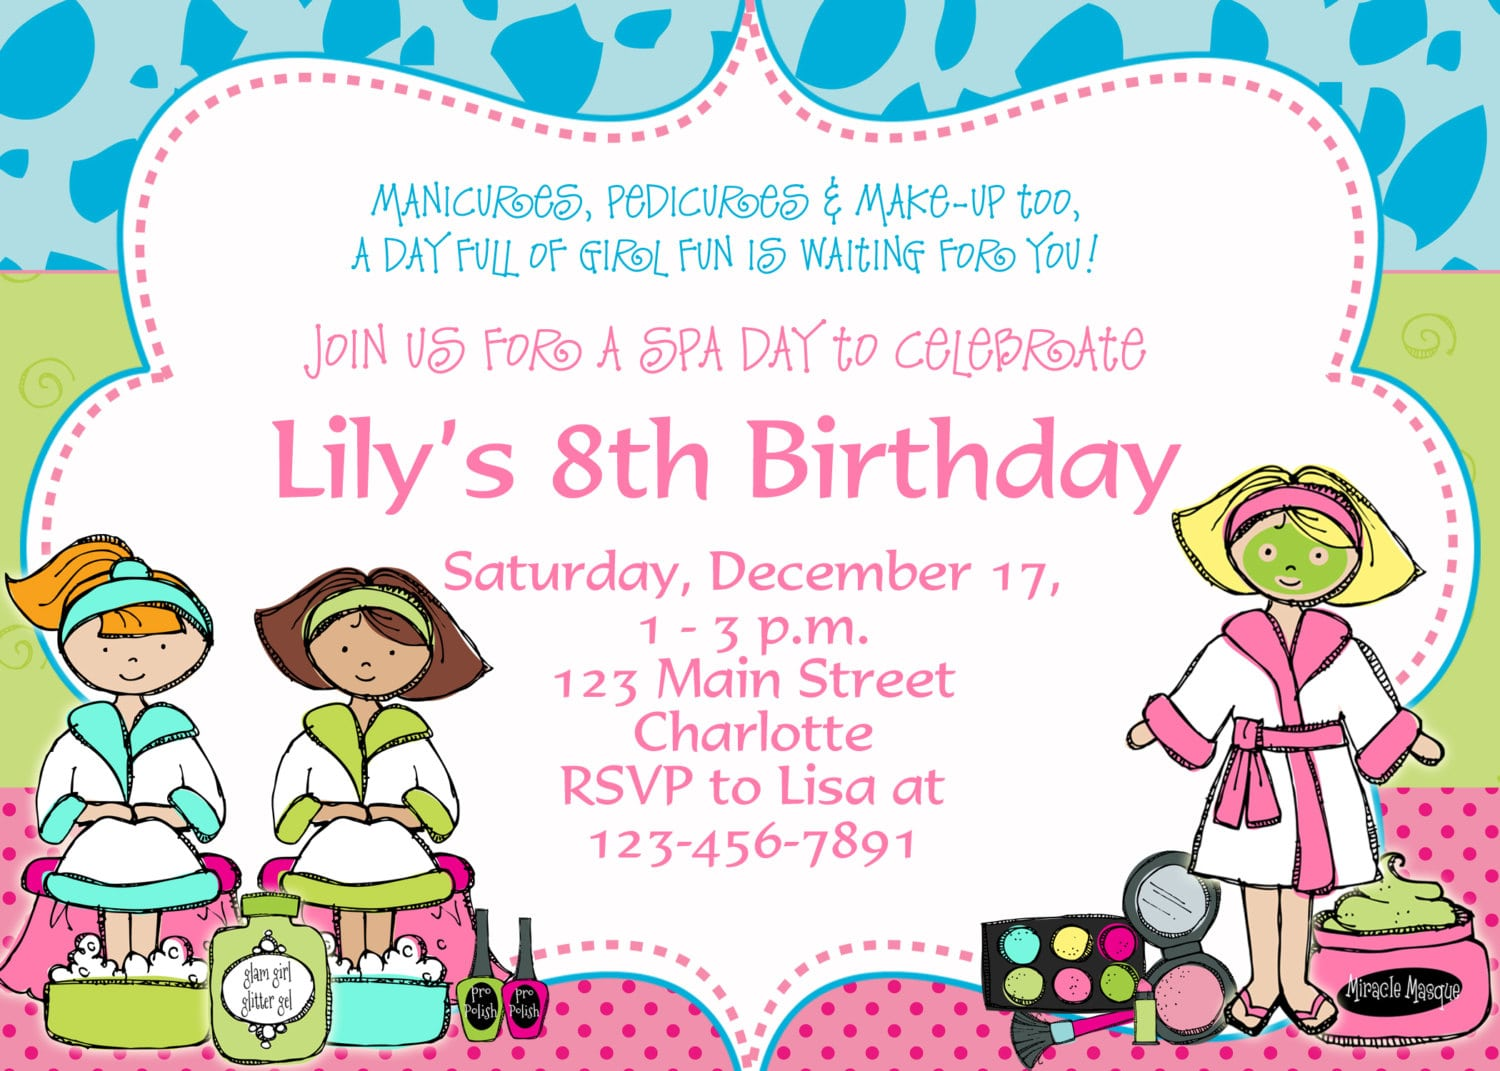 An Invitation To A Birthday Party Fabulous An Invitation To A